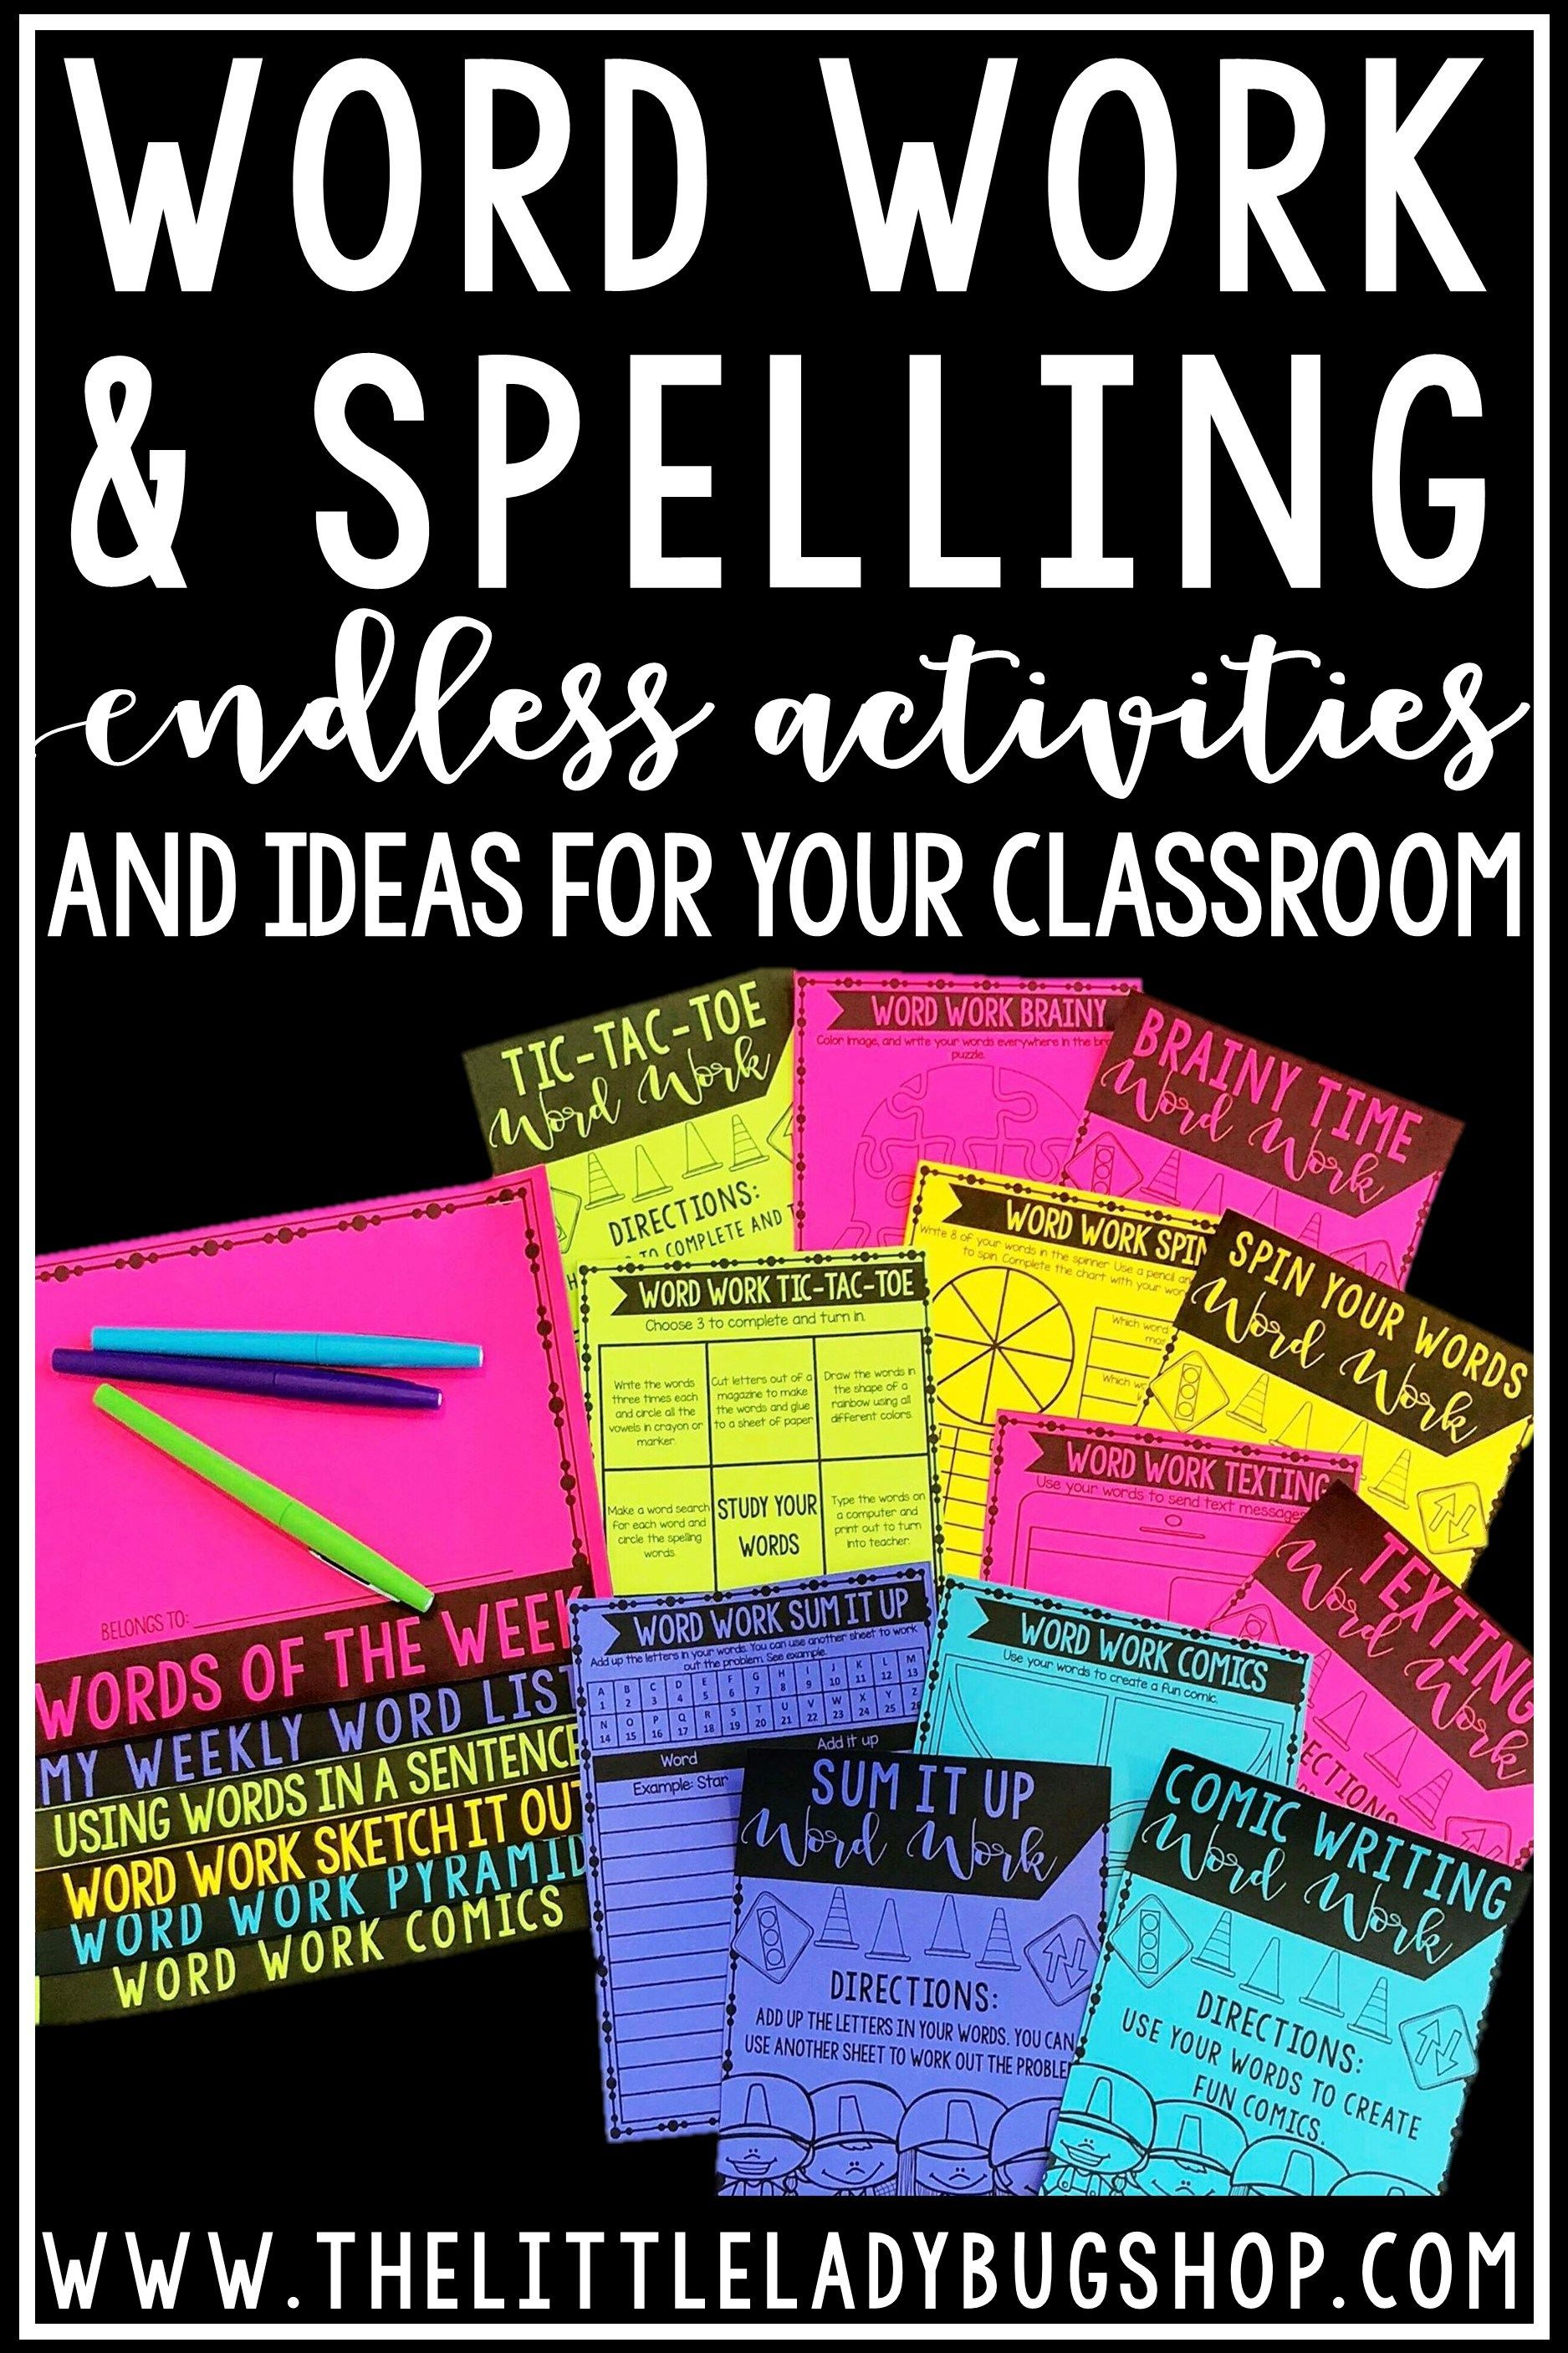 Another Word For To Do List Gorgeous Tips For Teaching Spelling And Word Work Activities  Pinterest .